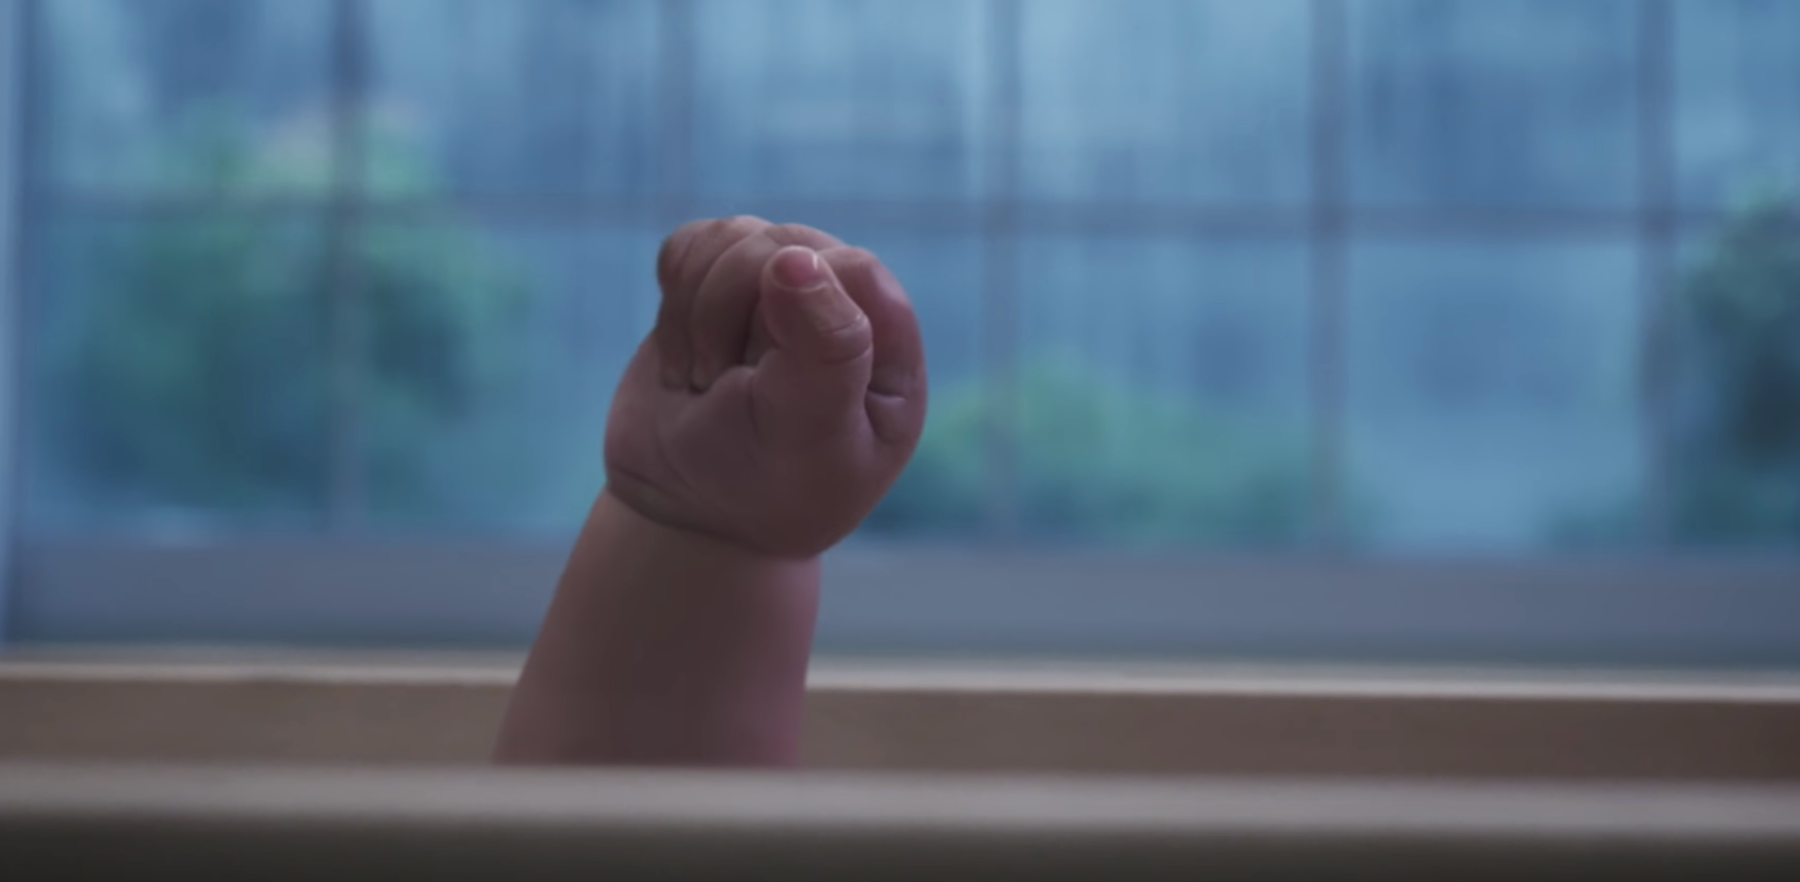 unlimited-future-baby-fist